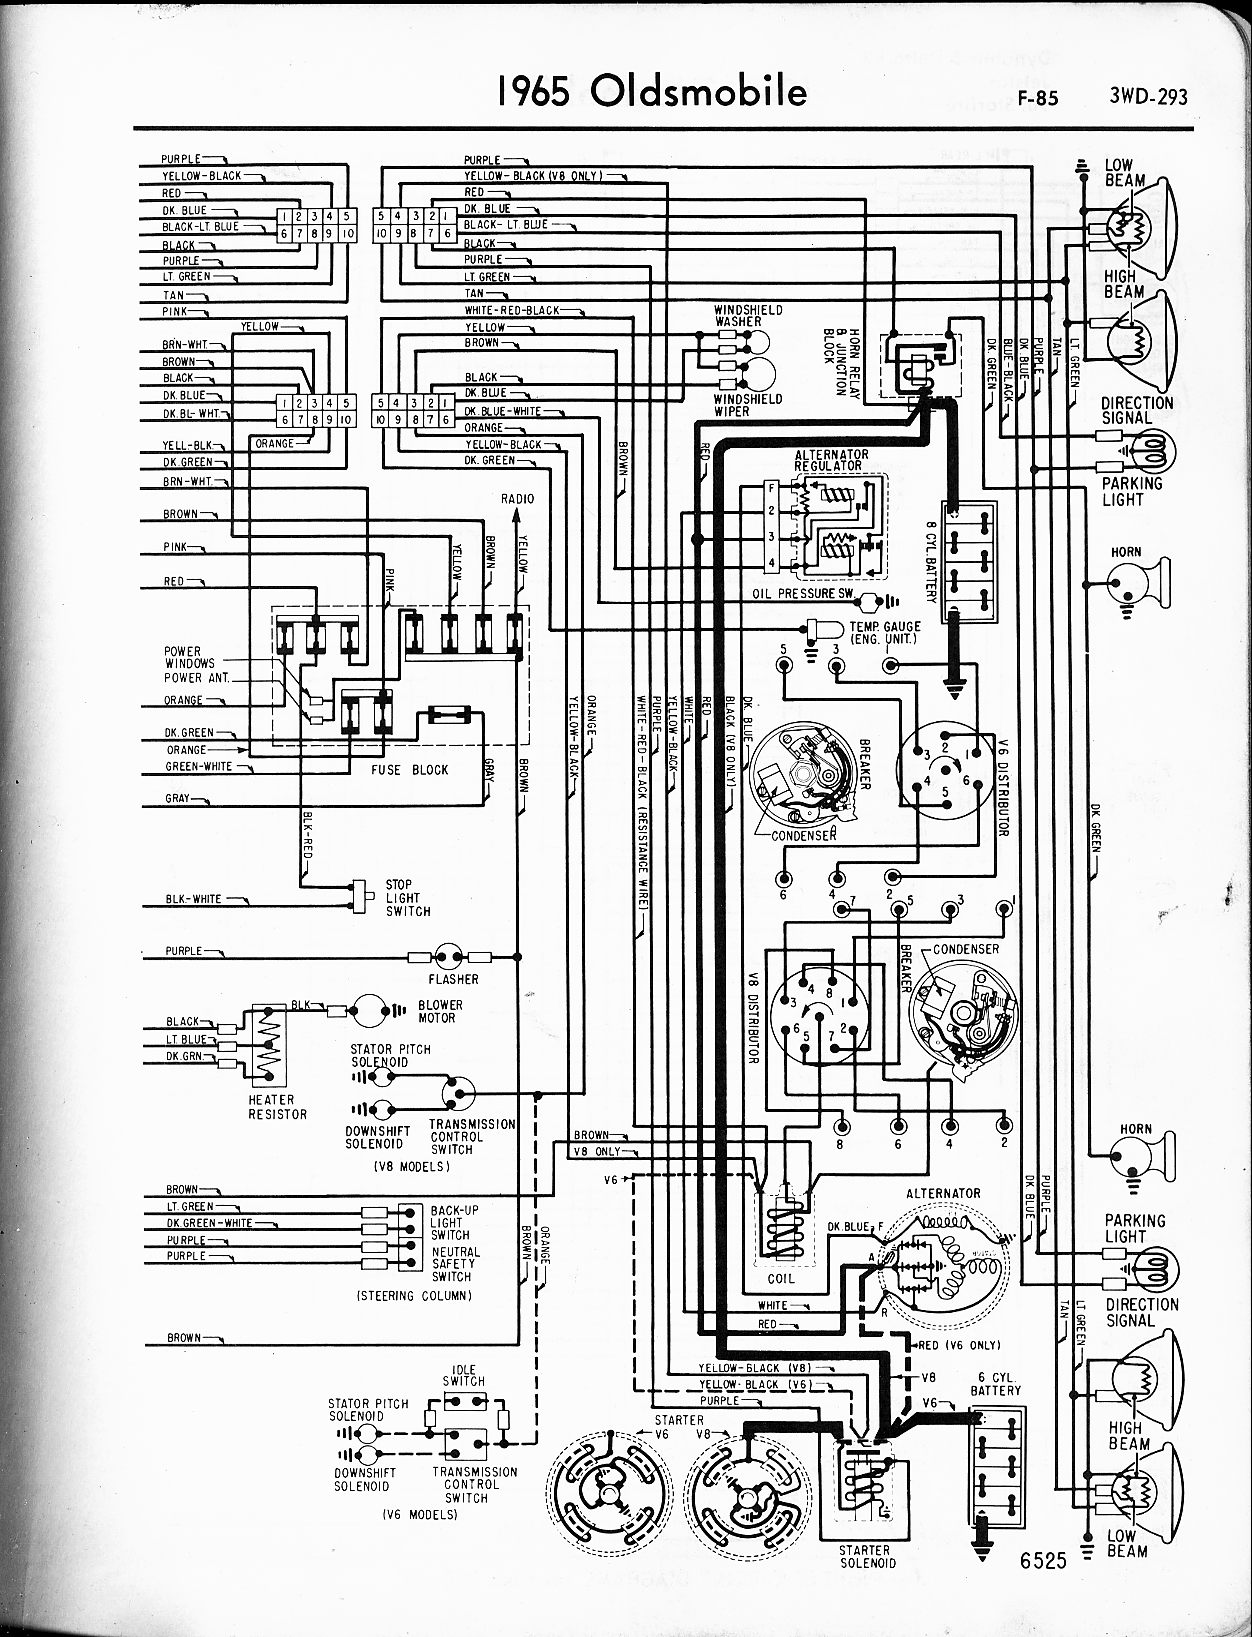 MWire5765 293 oldsmobile wiring diagrams the old car manual project Basic Turn Signal Wiring Diagram at crackthecode.co